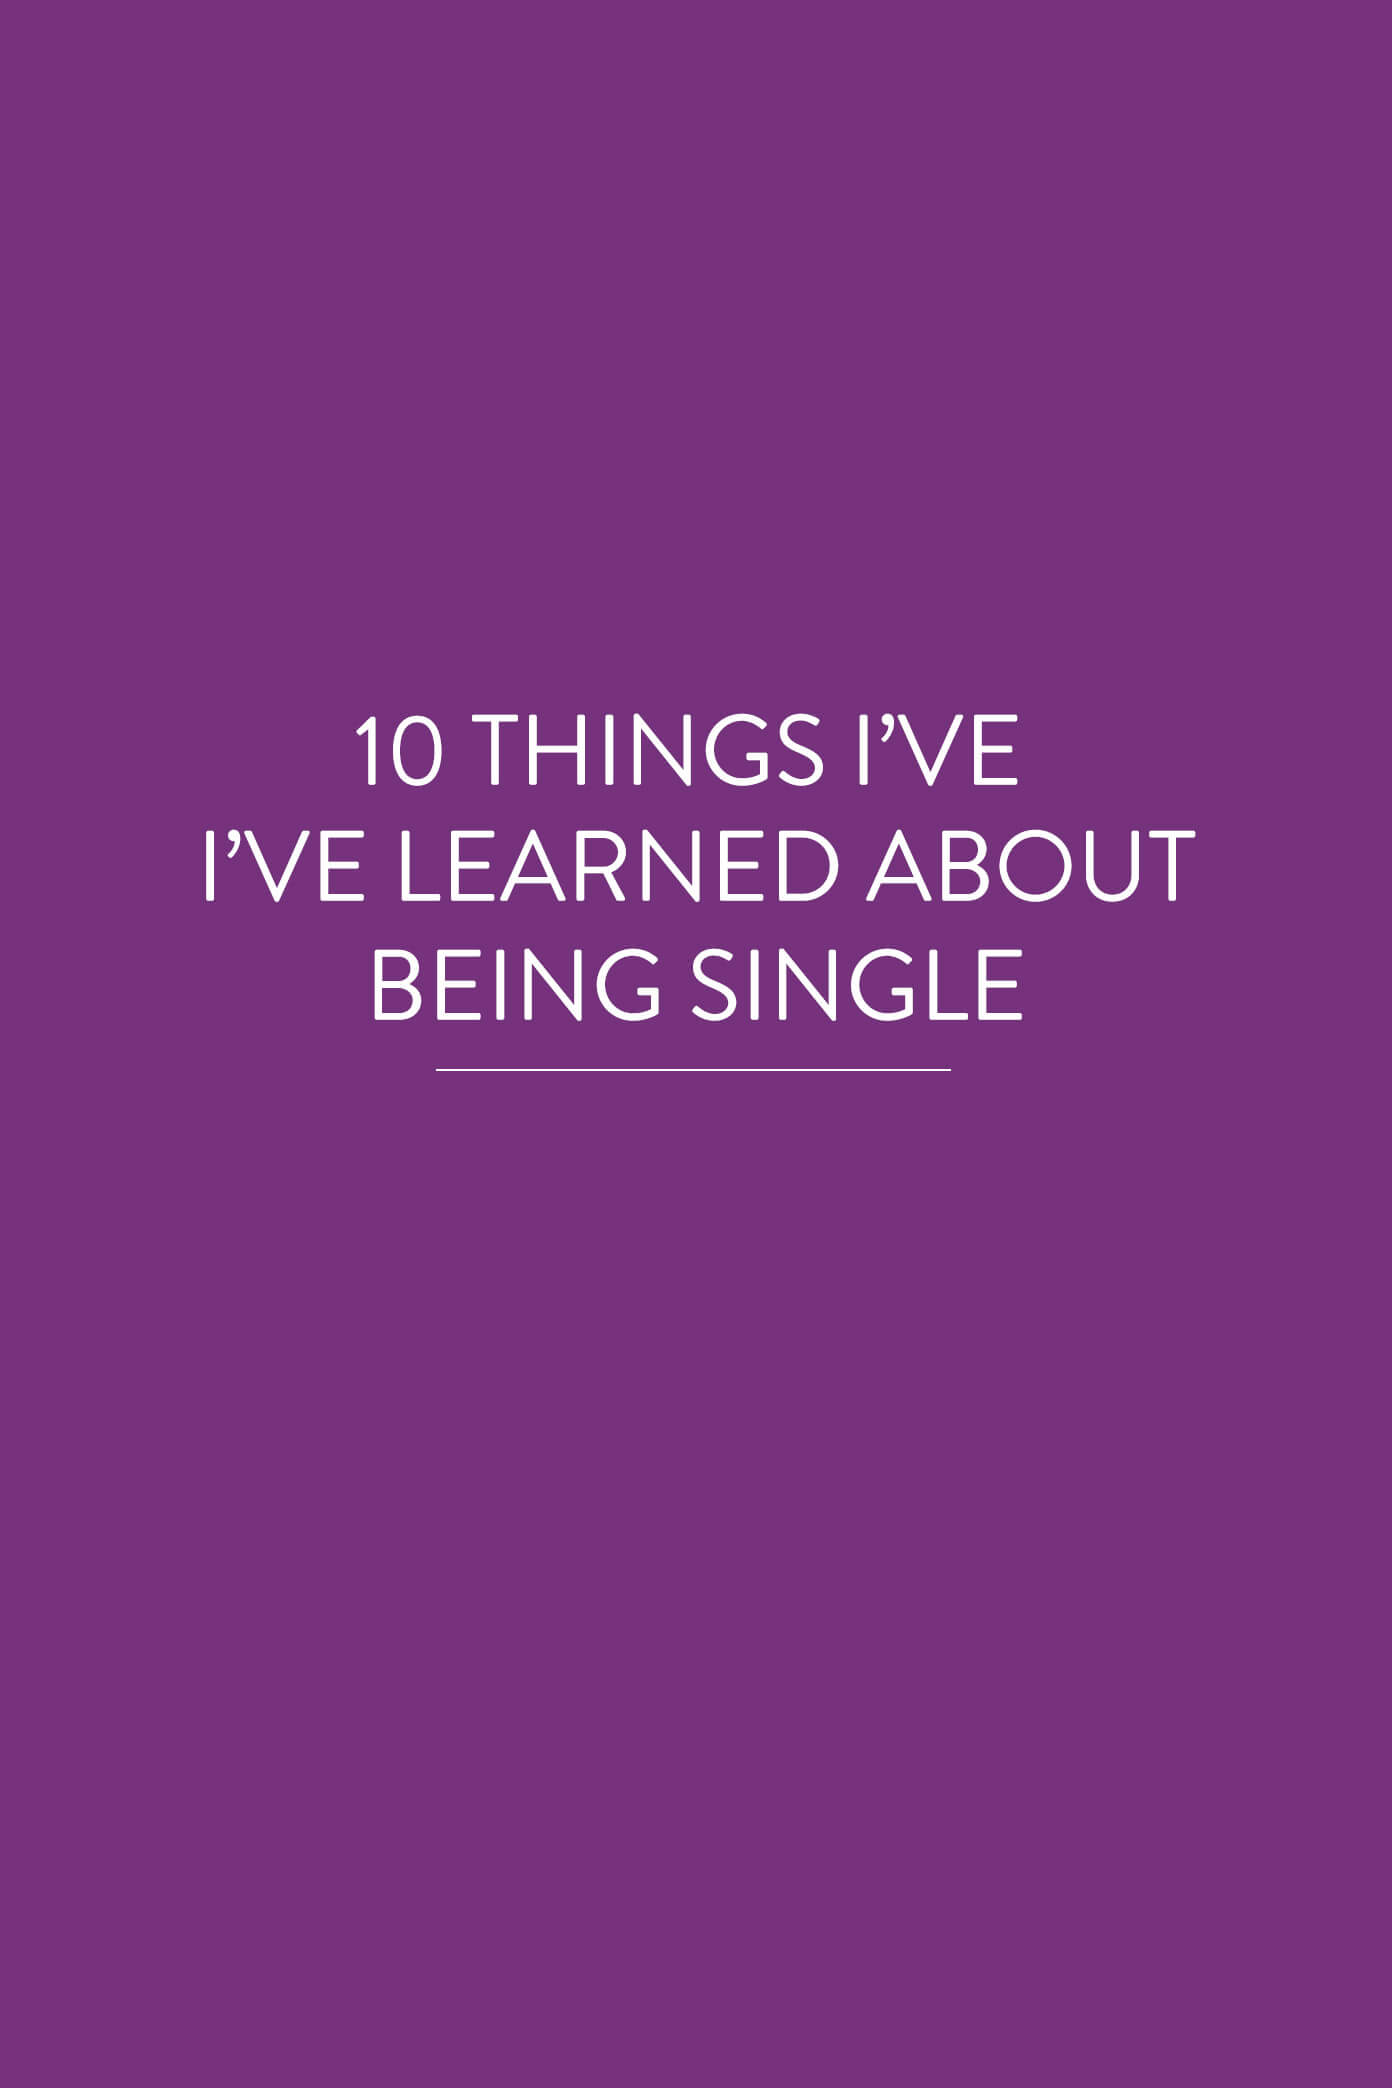 10 Kitchen And Home Decor Items Every 20 Something Needs: 10 Things I've Learned About Being Single (That I Didn't